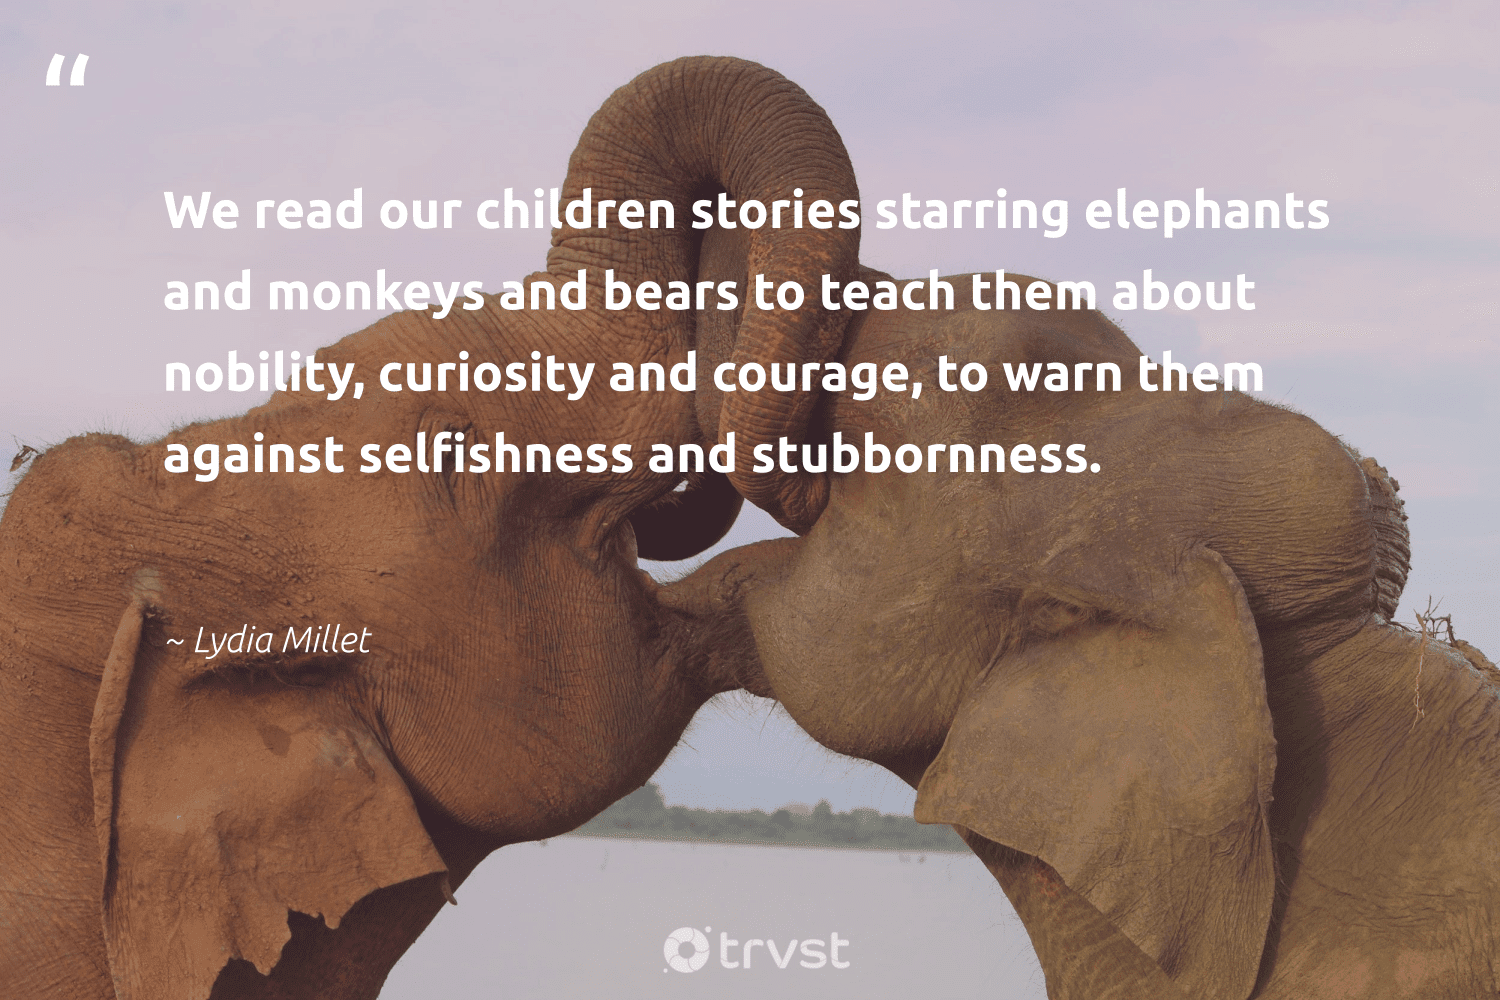 """""""We read our children stories starring elephants and monkeys and bears to teach them about nobility, curiosity and courage, to warn them against selfishness and stubbornness.""""  - Lydia Millet #trvst #quotes #children #elephants #wildlife #beinspired #mammals #socialchange #elephant #dogood #naturelovers #collectiveaction"""